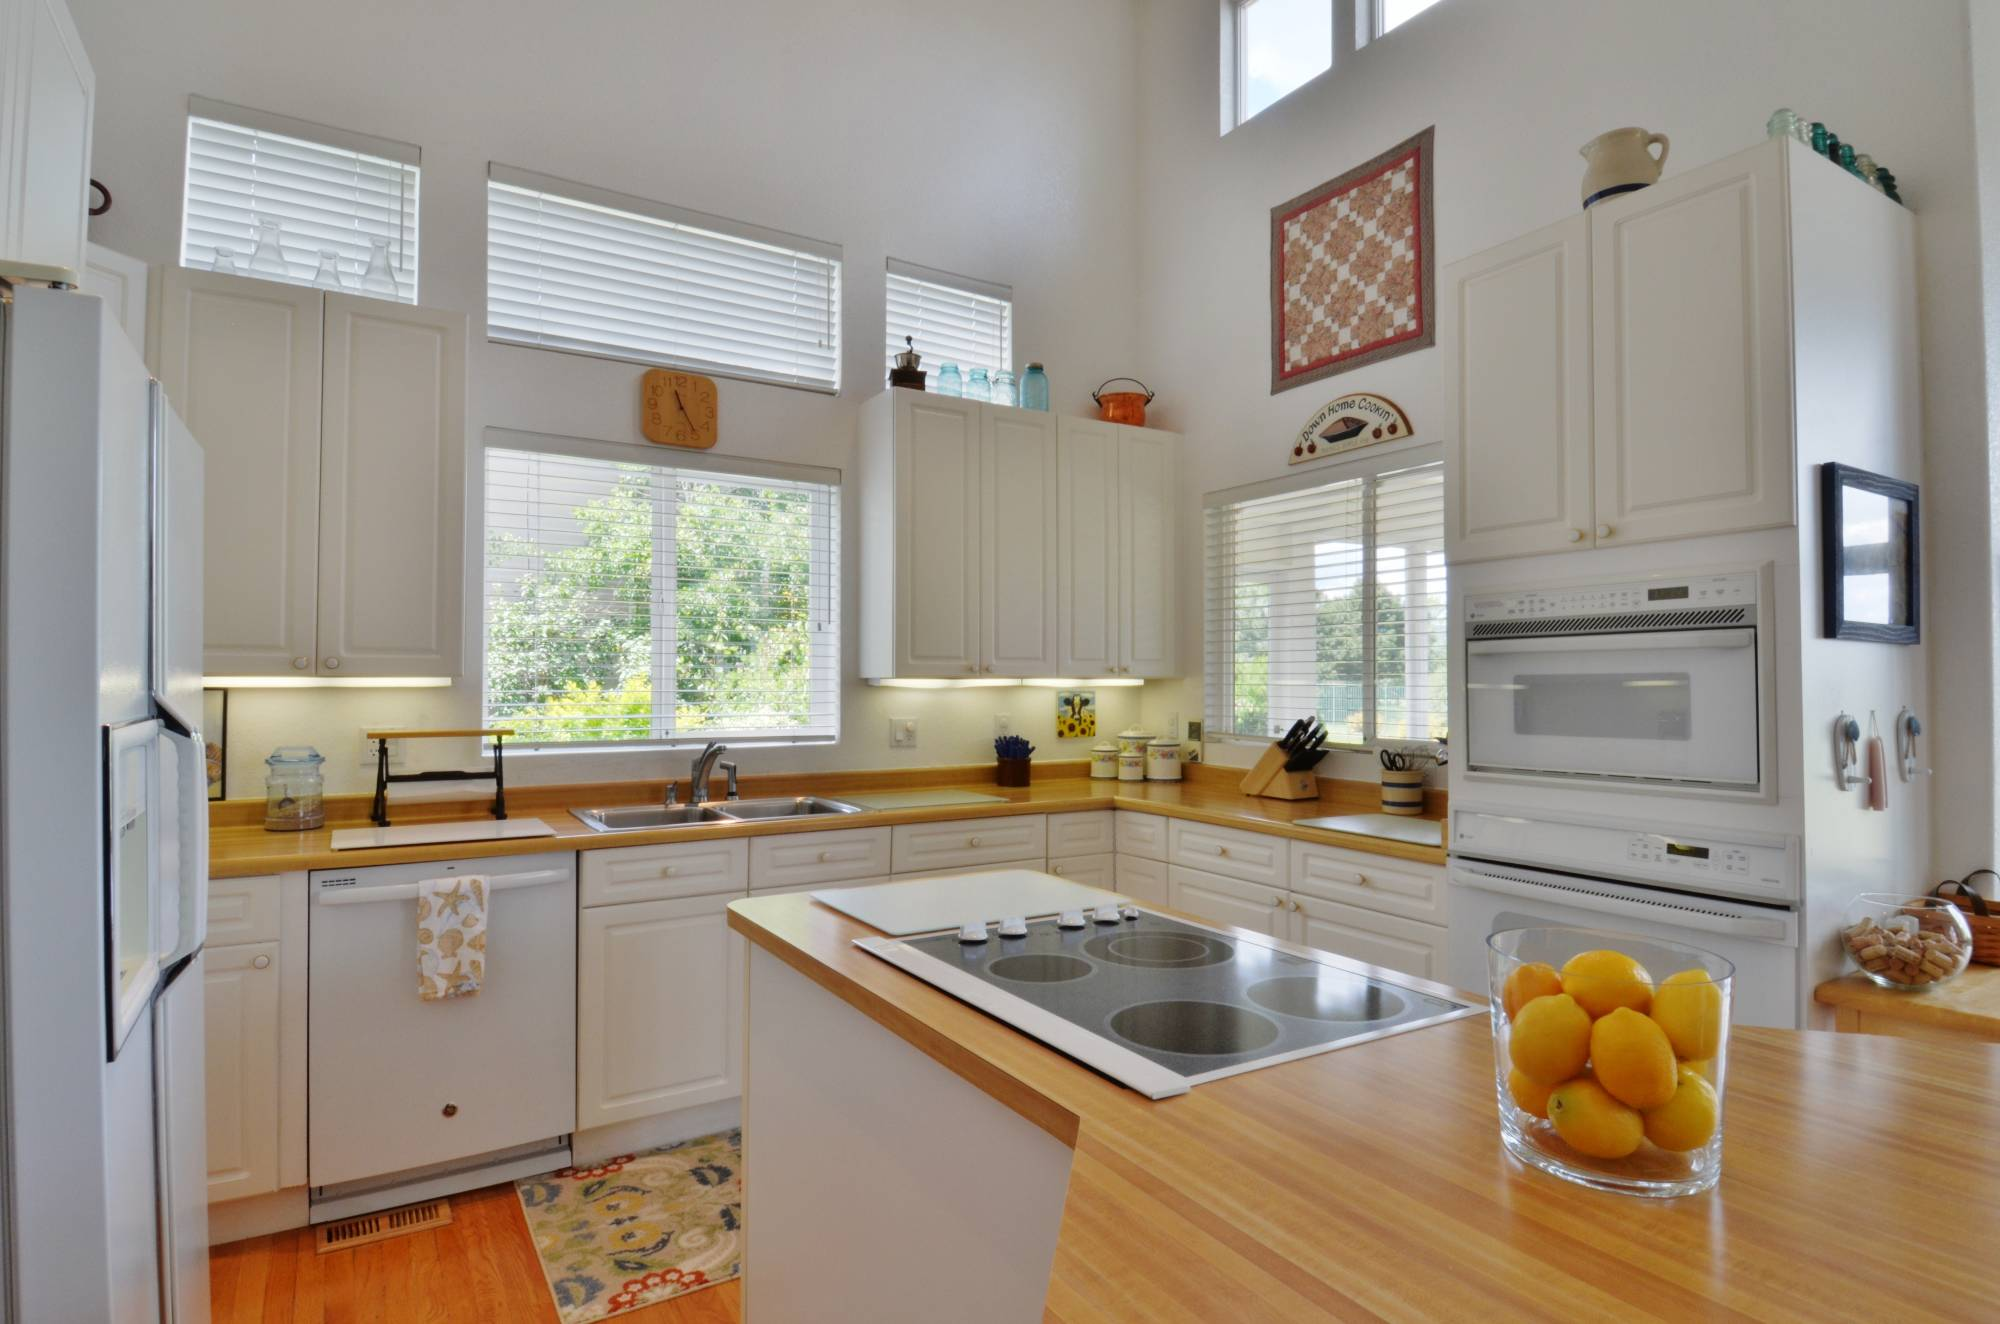 Interior Photo of a Kitchen in Lakewood